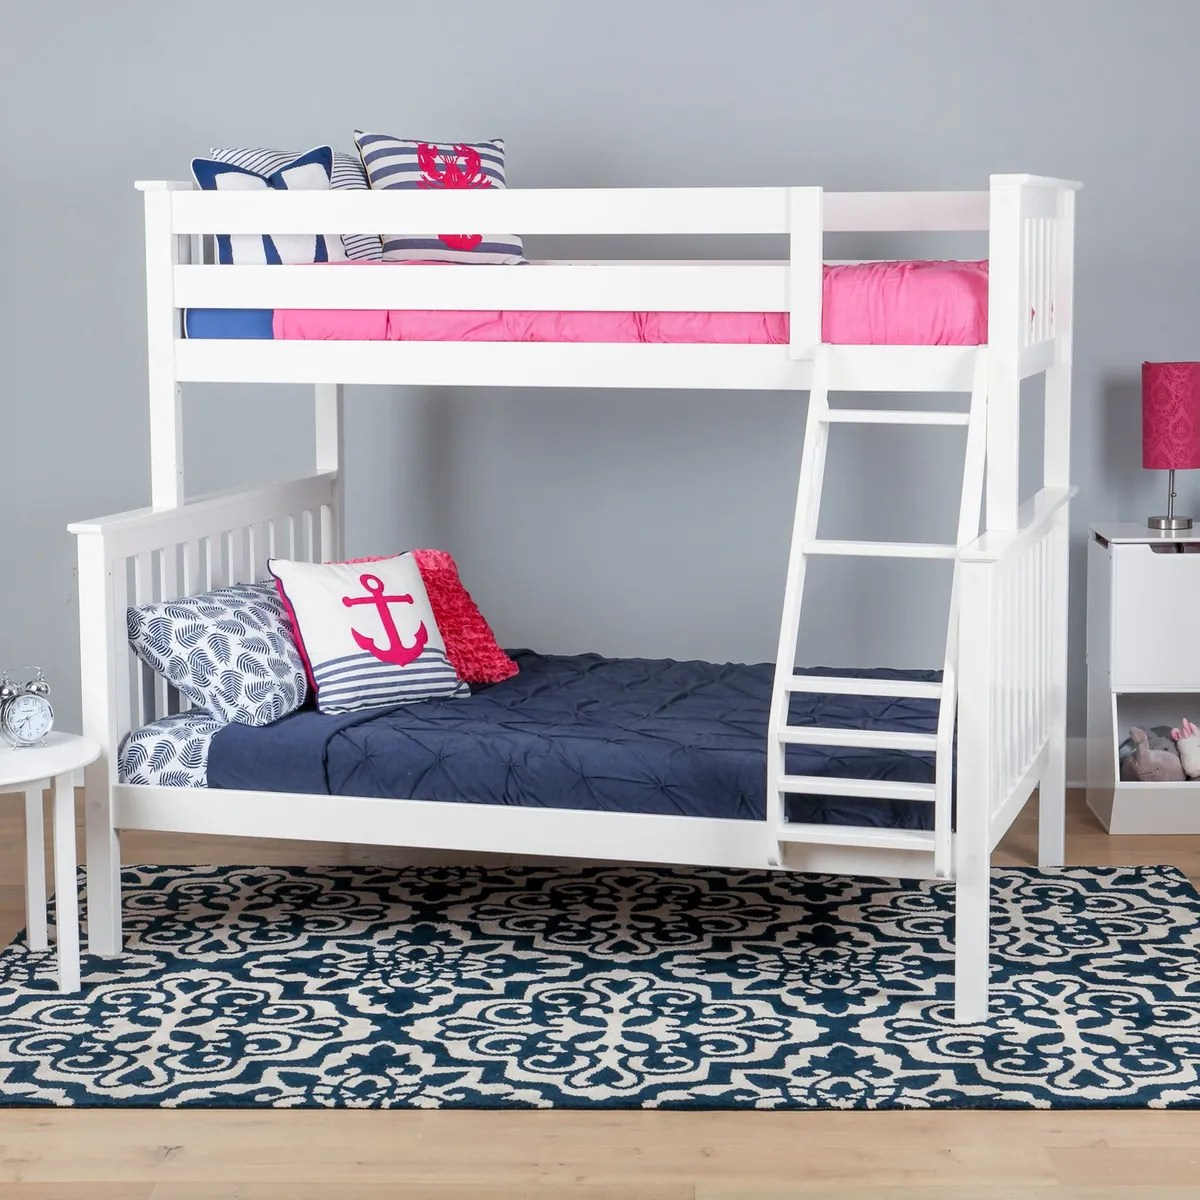 12 Best Twin Beds For Kids 2019 The Strategist New York Magazine